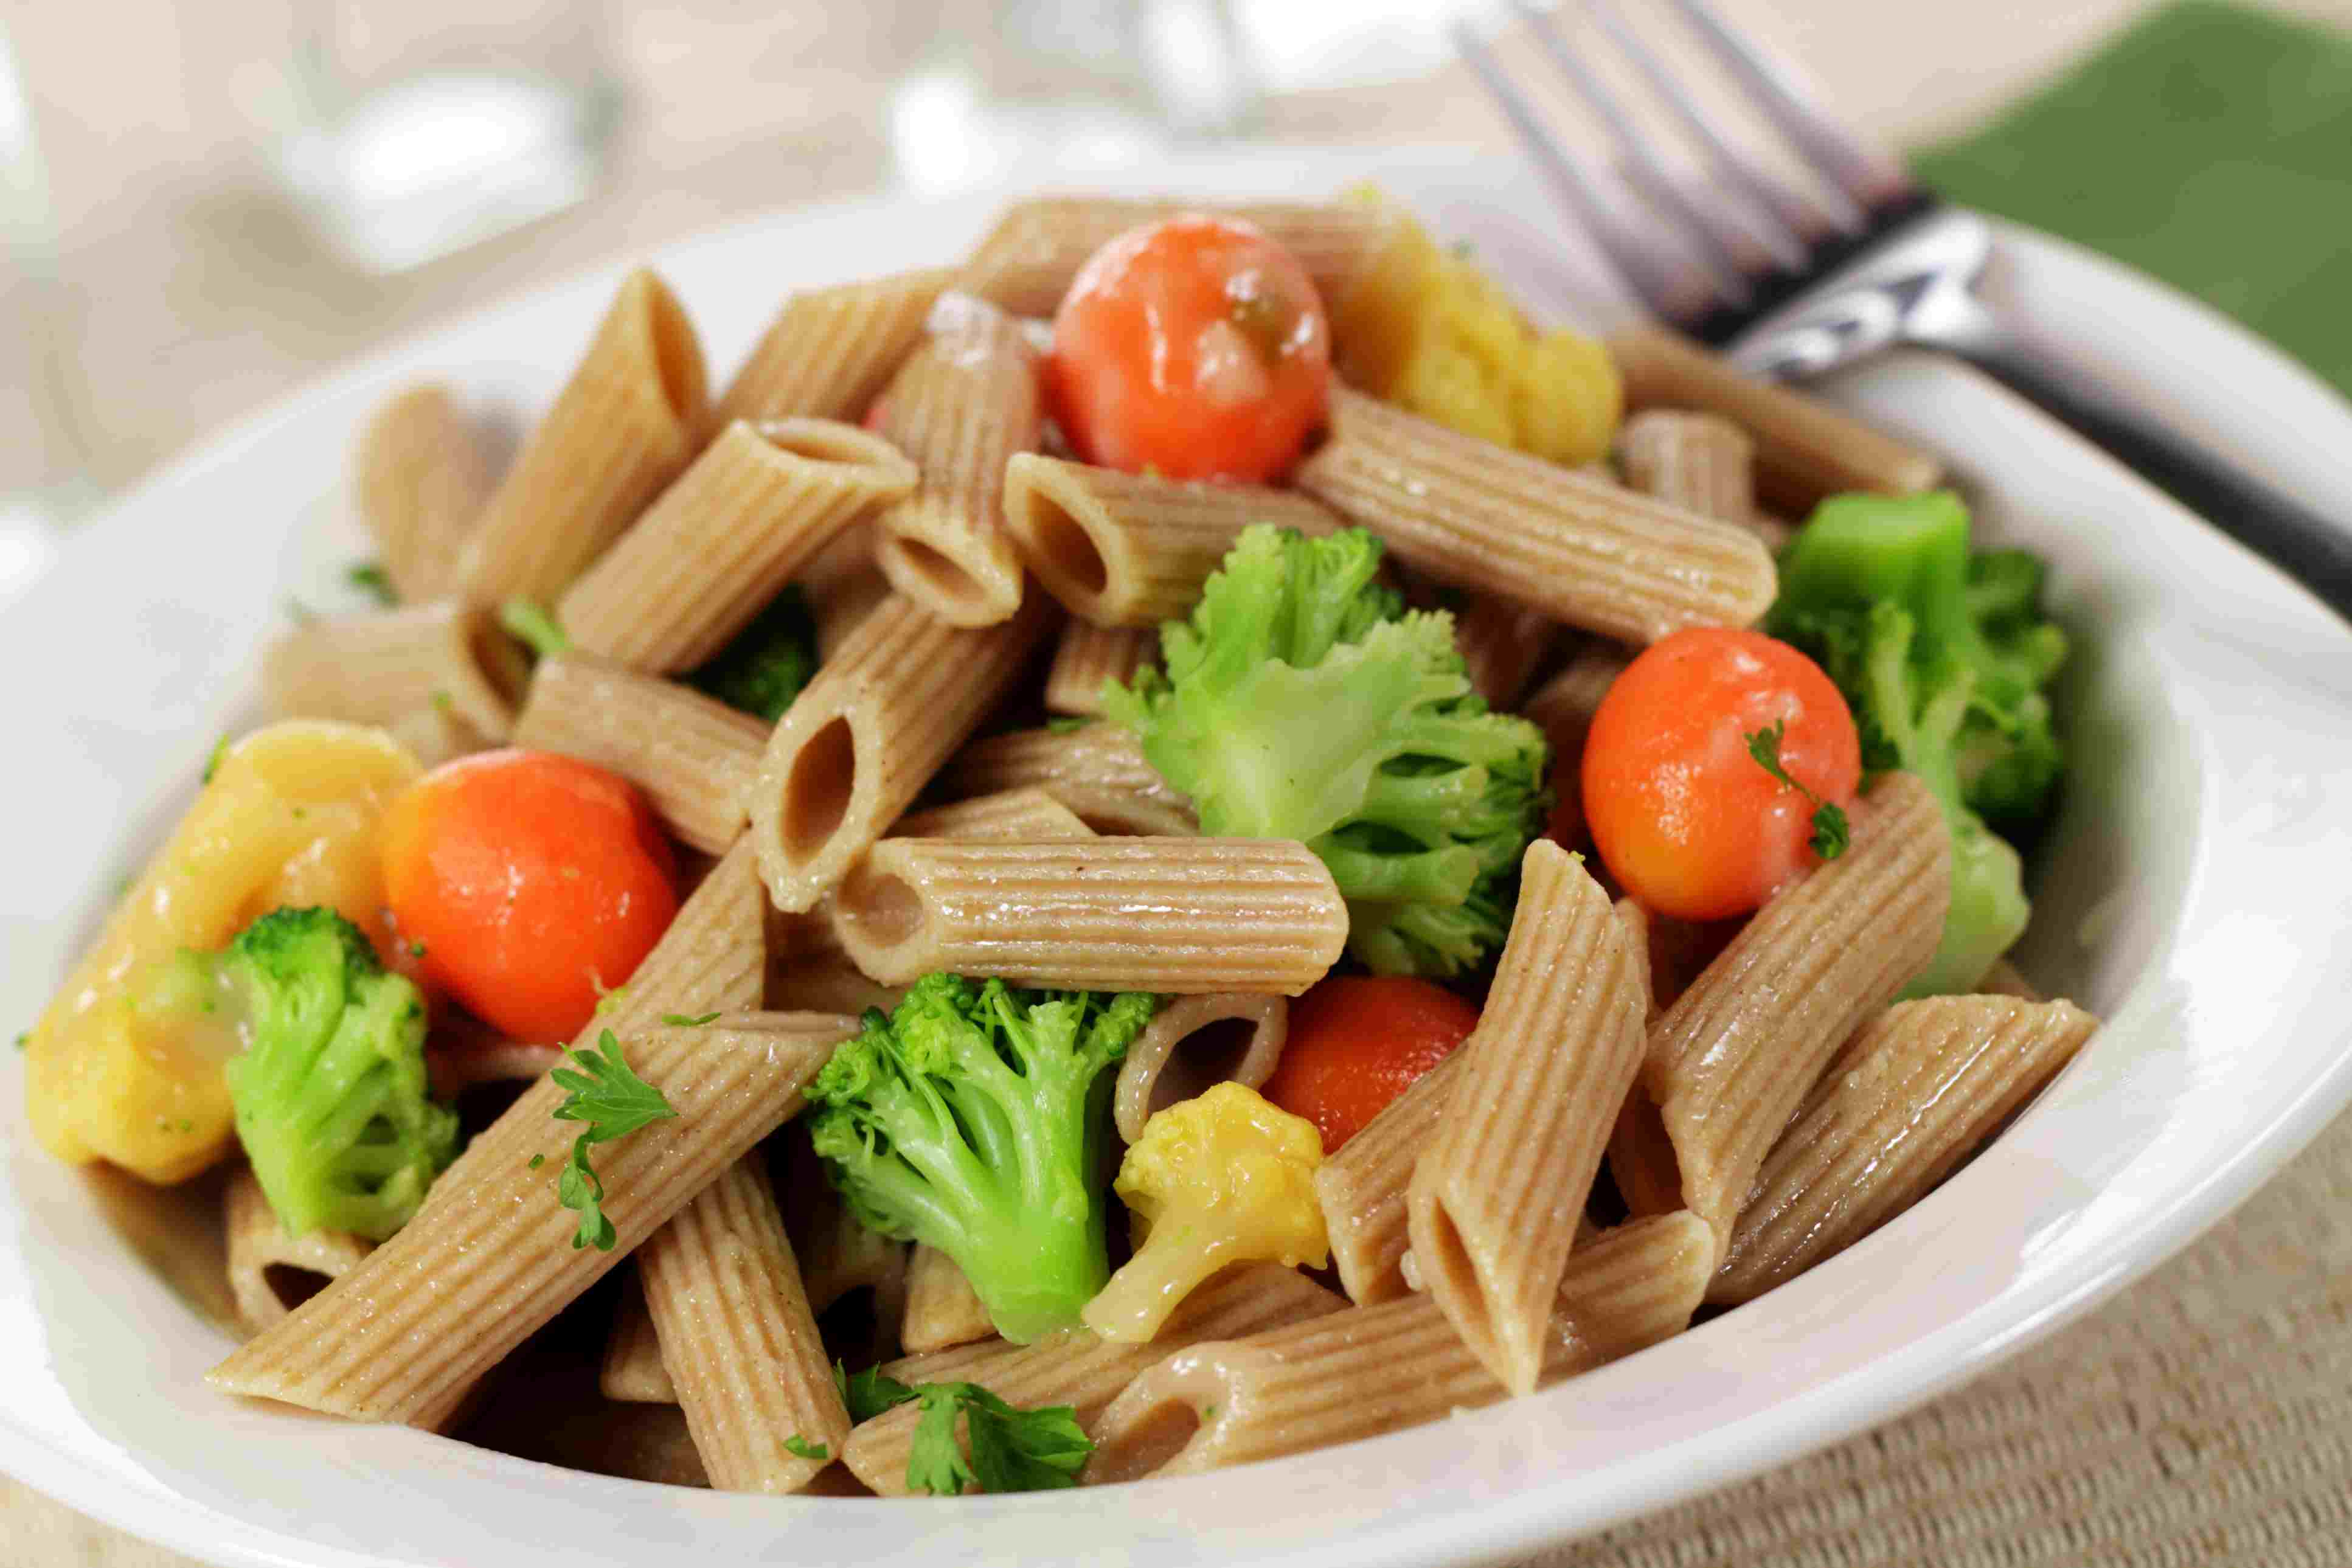 Whole wheat pasta and vegetables is high in fiber.